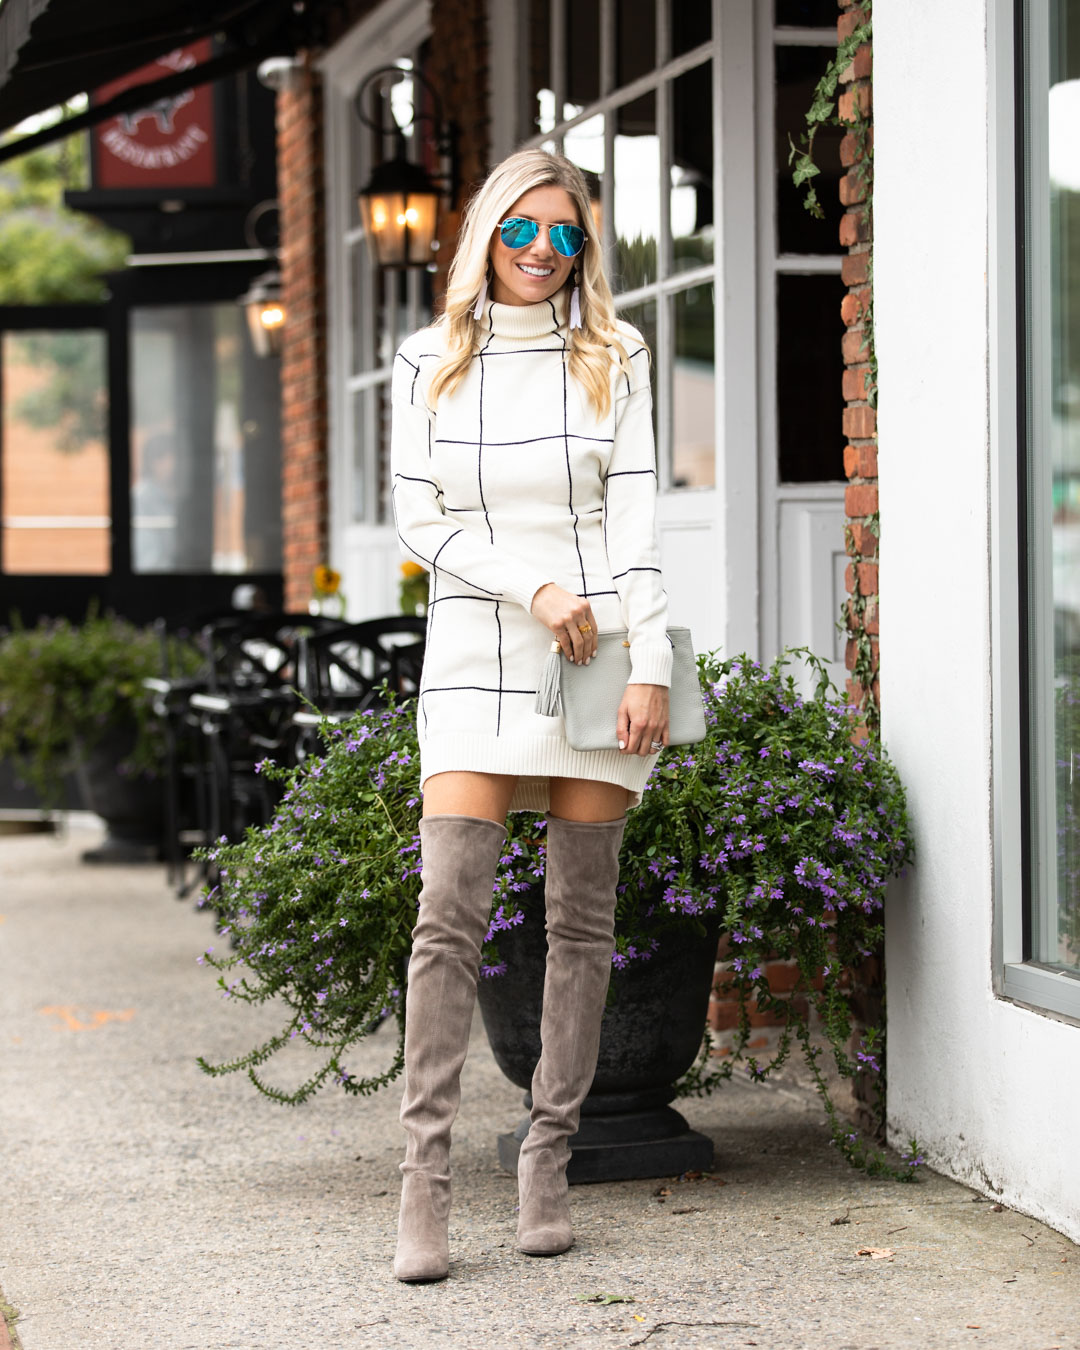 38eee94a008 Check out the details of this Windowpane Sweater Dress and Over the Knee  Boots below!